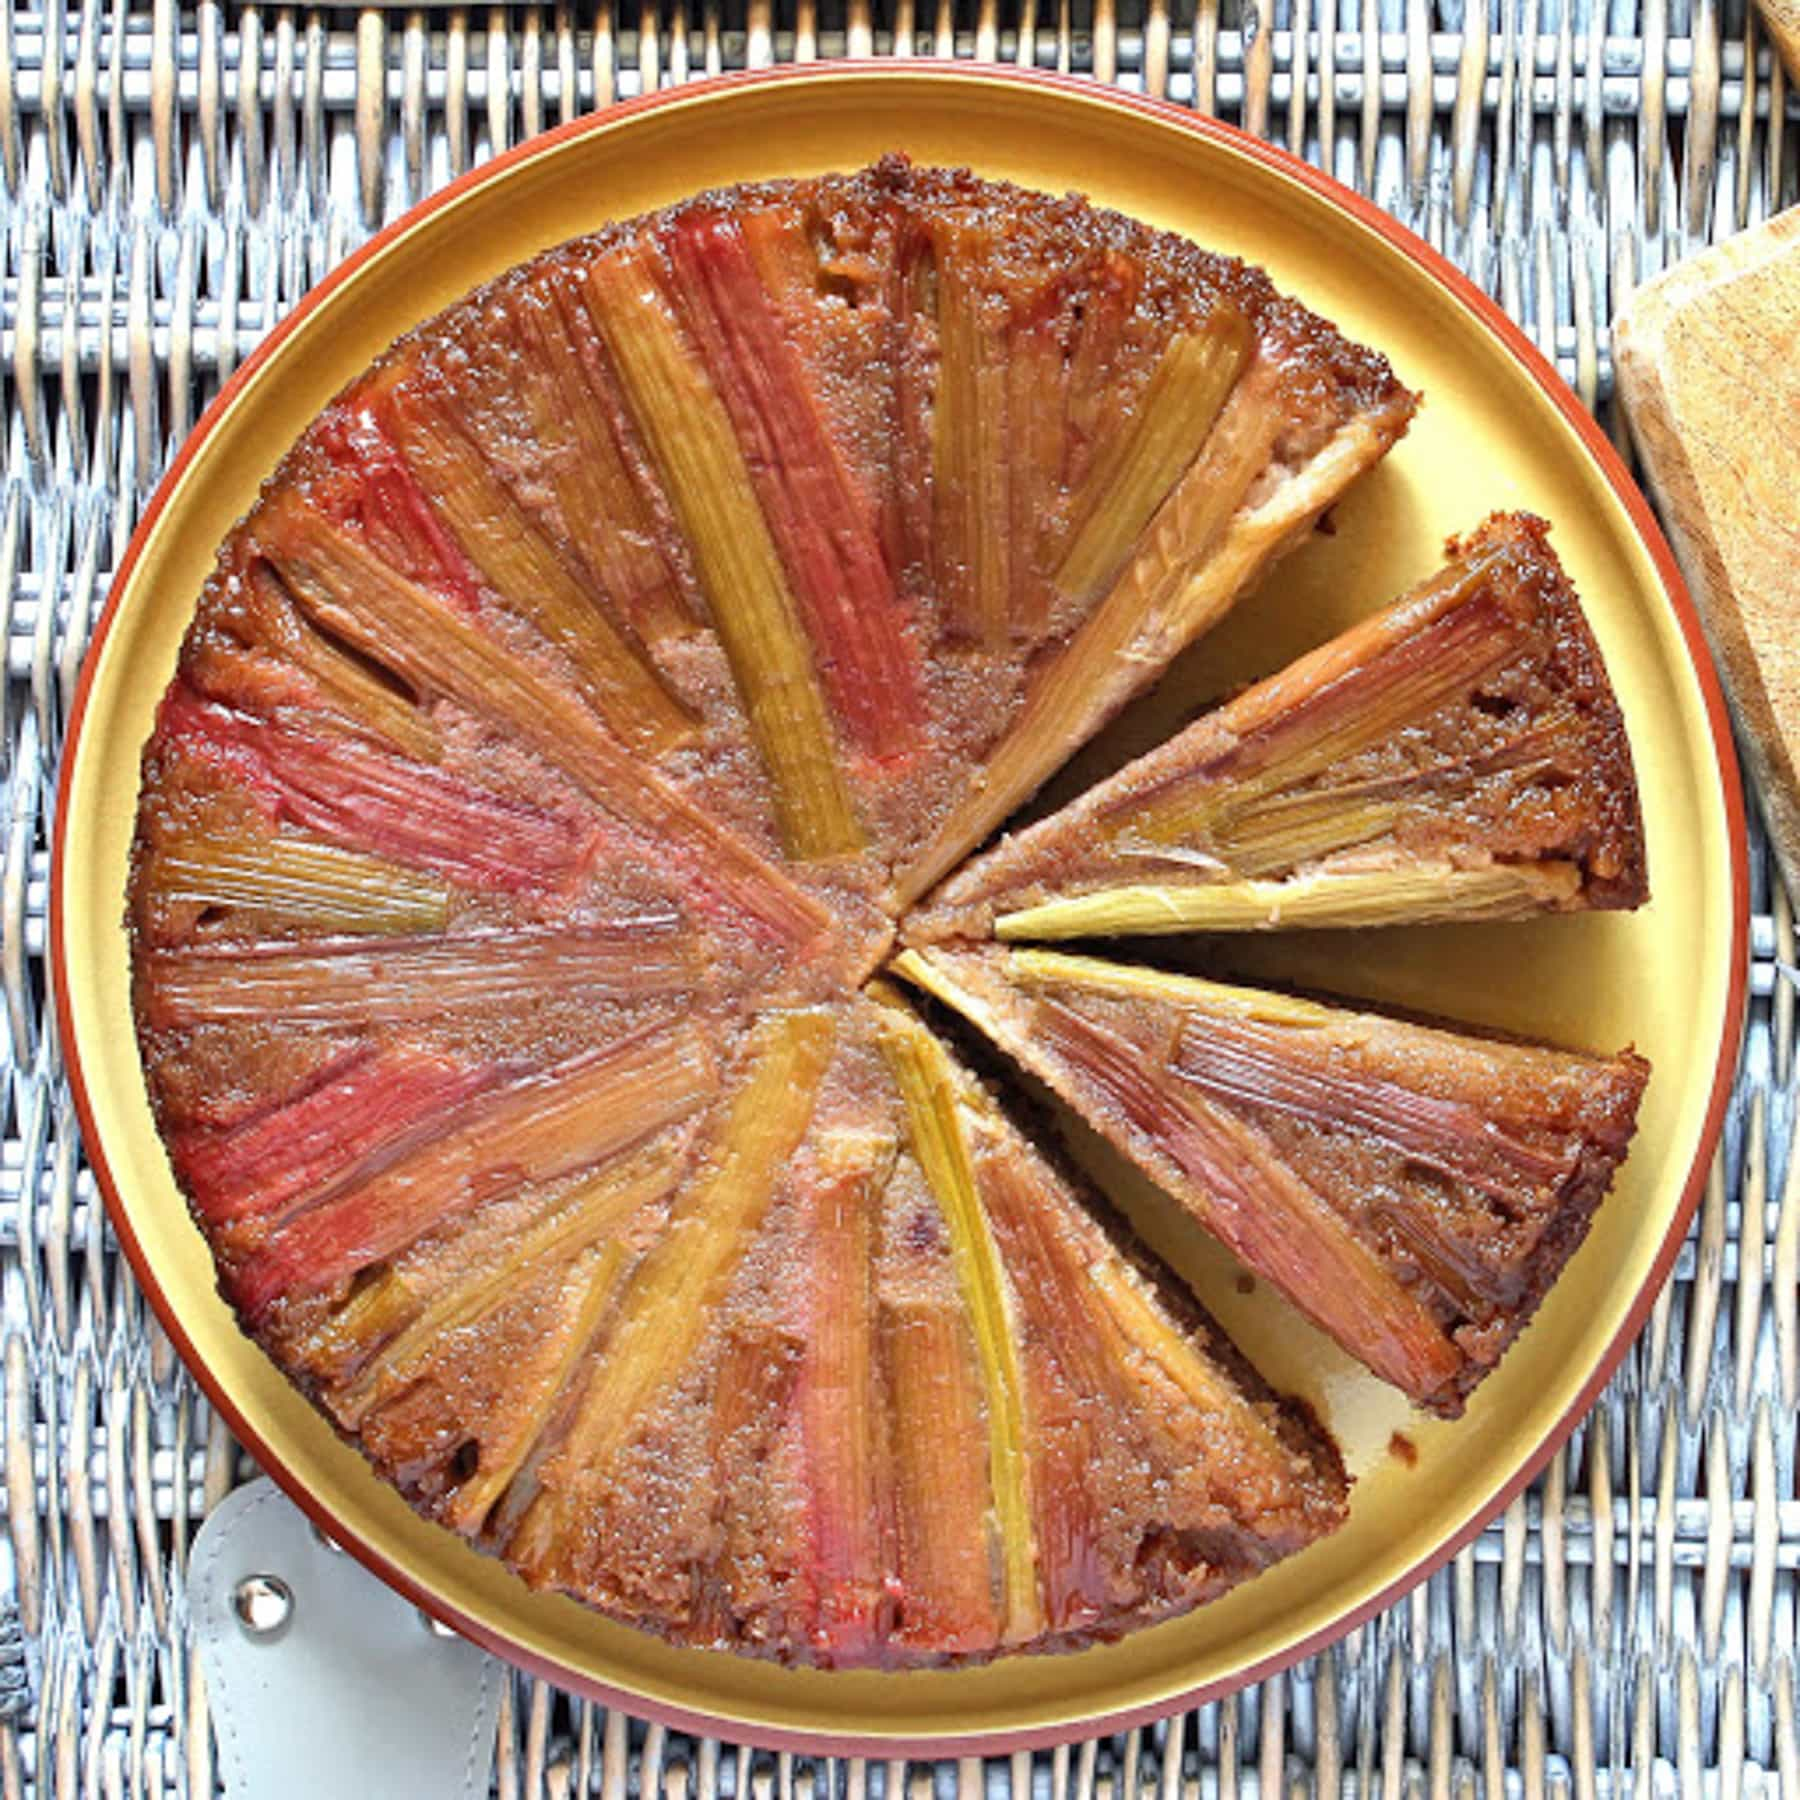 Gluten Free Rhubarb Upside Down Cake with Strawberry and Almond Sponge